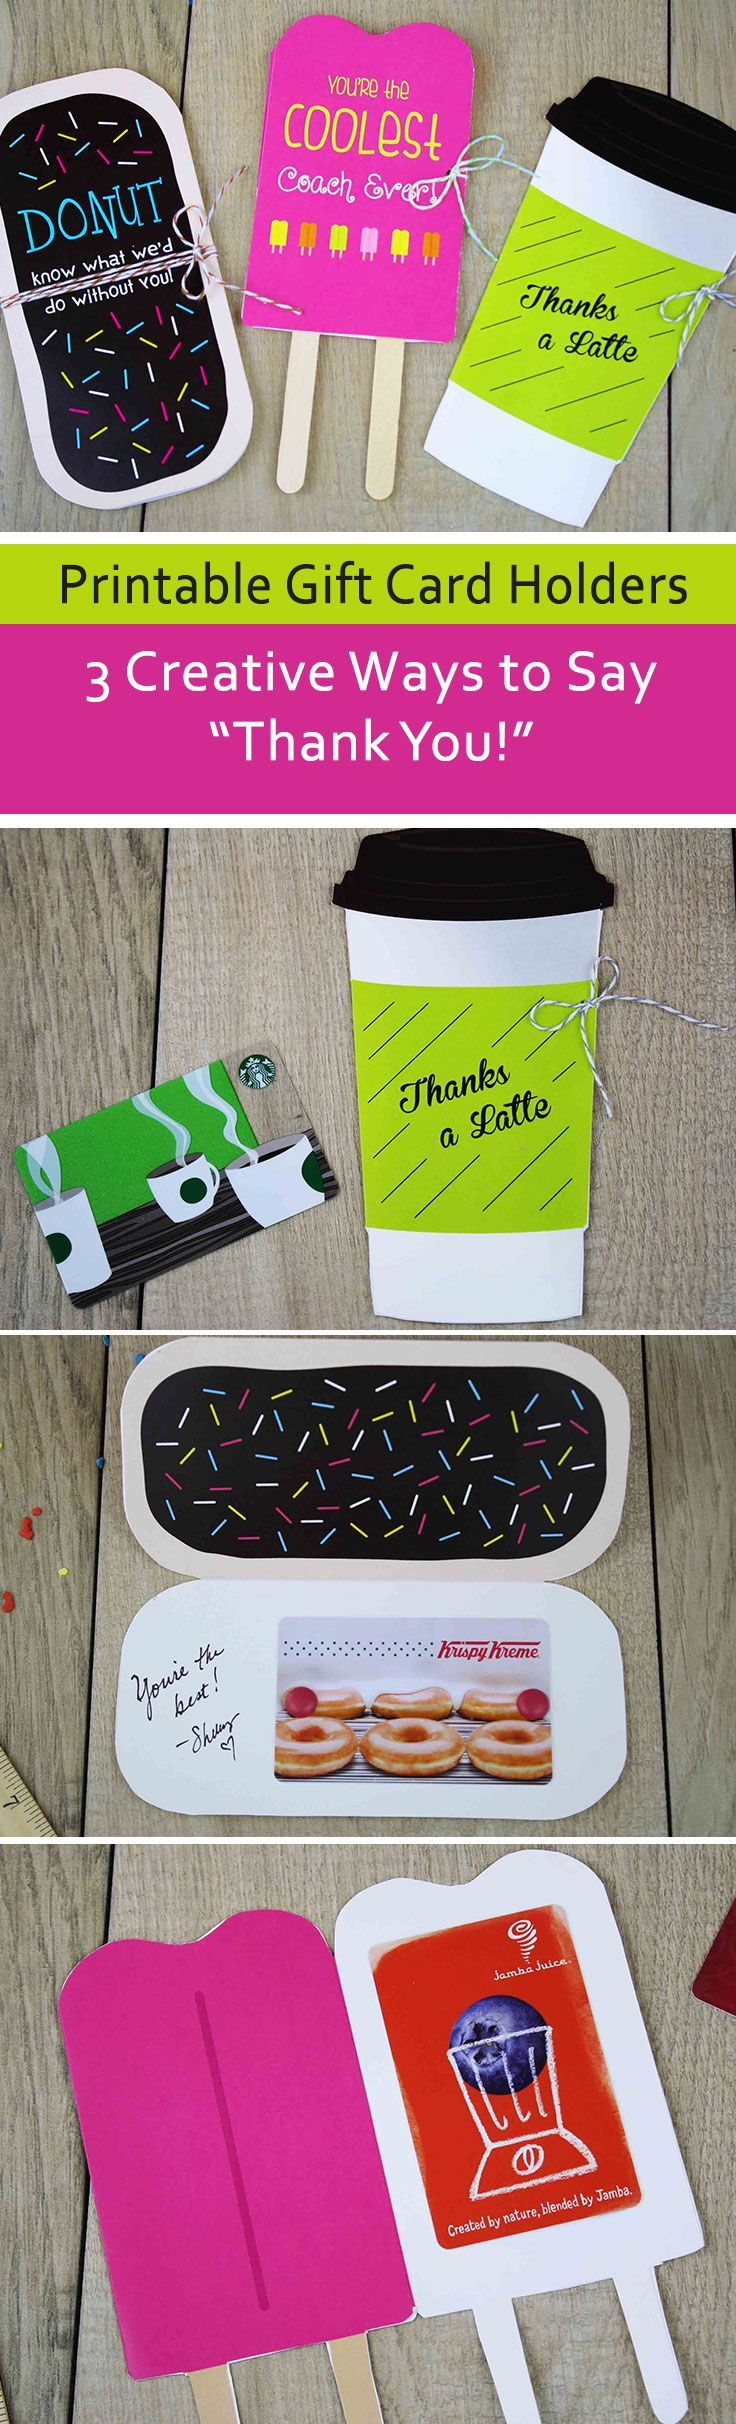 """3 Creative Ways to Say Thank You with Gift Cards. Free gift card holders you can cut out, craft up and deliver! Super easy and super cute. """"Thanks a LATTE,"""" """"You're the COOLest"""" and """"DONUT know what we'd do without you. Great for teacher appreciation, coach gifts and telling a friend thanks for helping out."""